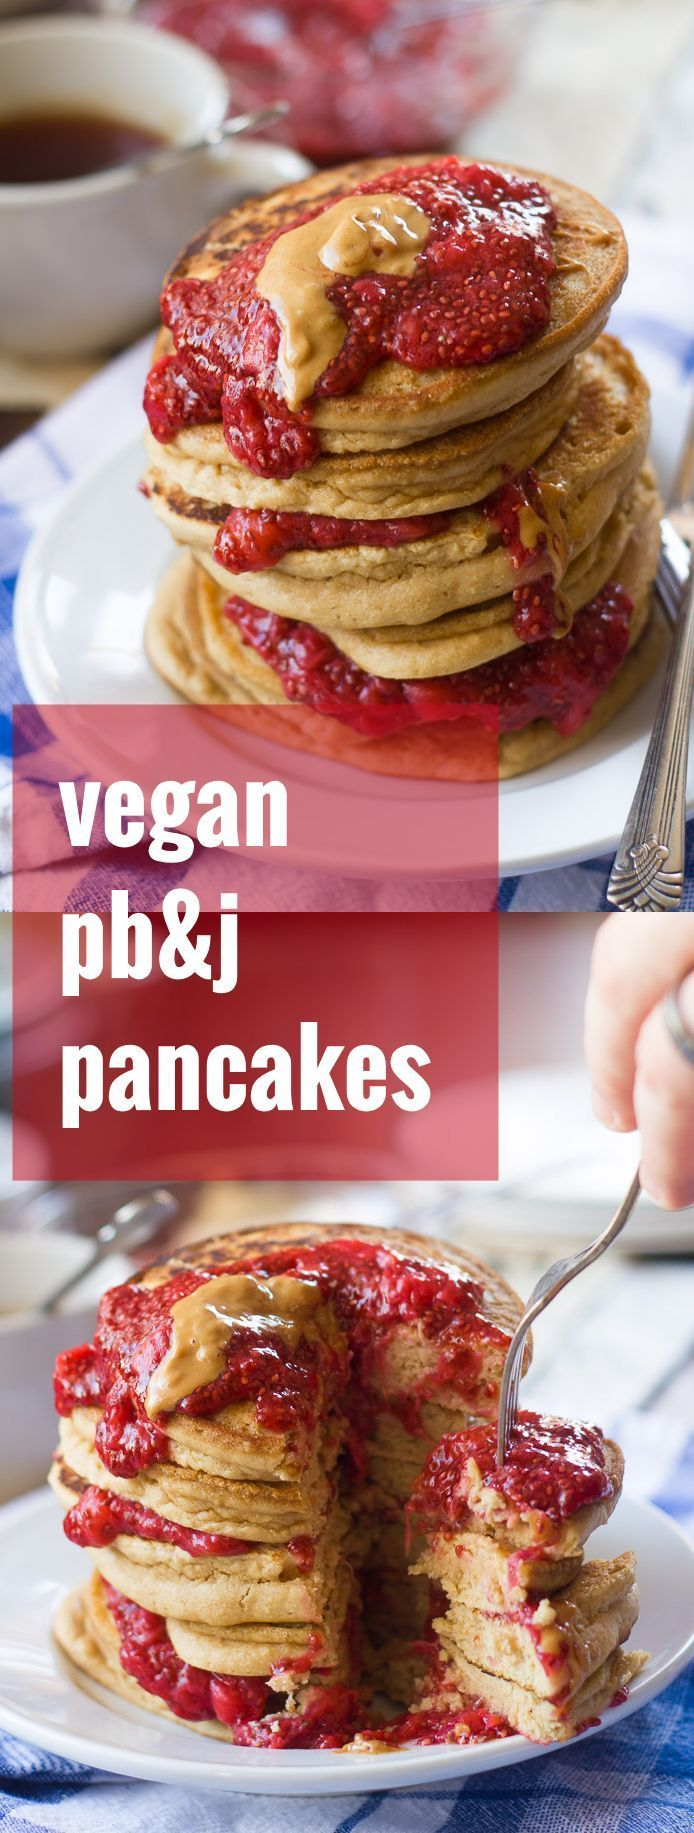 Fluffy peanut butter pancakes are layered with sweet and juicy strawberry chia jam to make this scrumptious and satisfying stack of vegan pb&j pancakes.